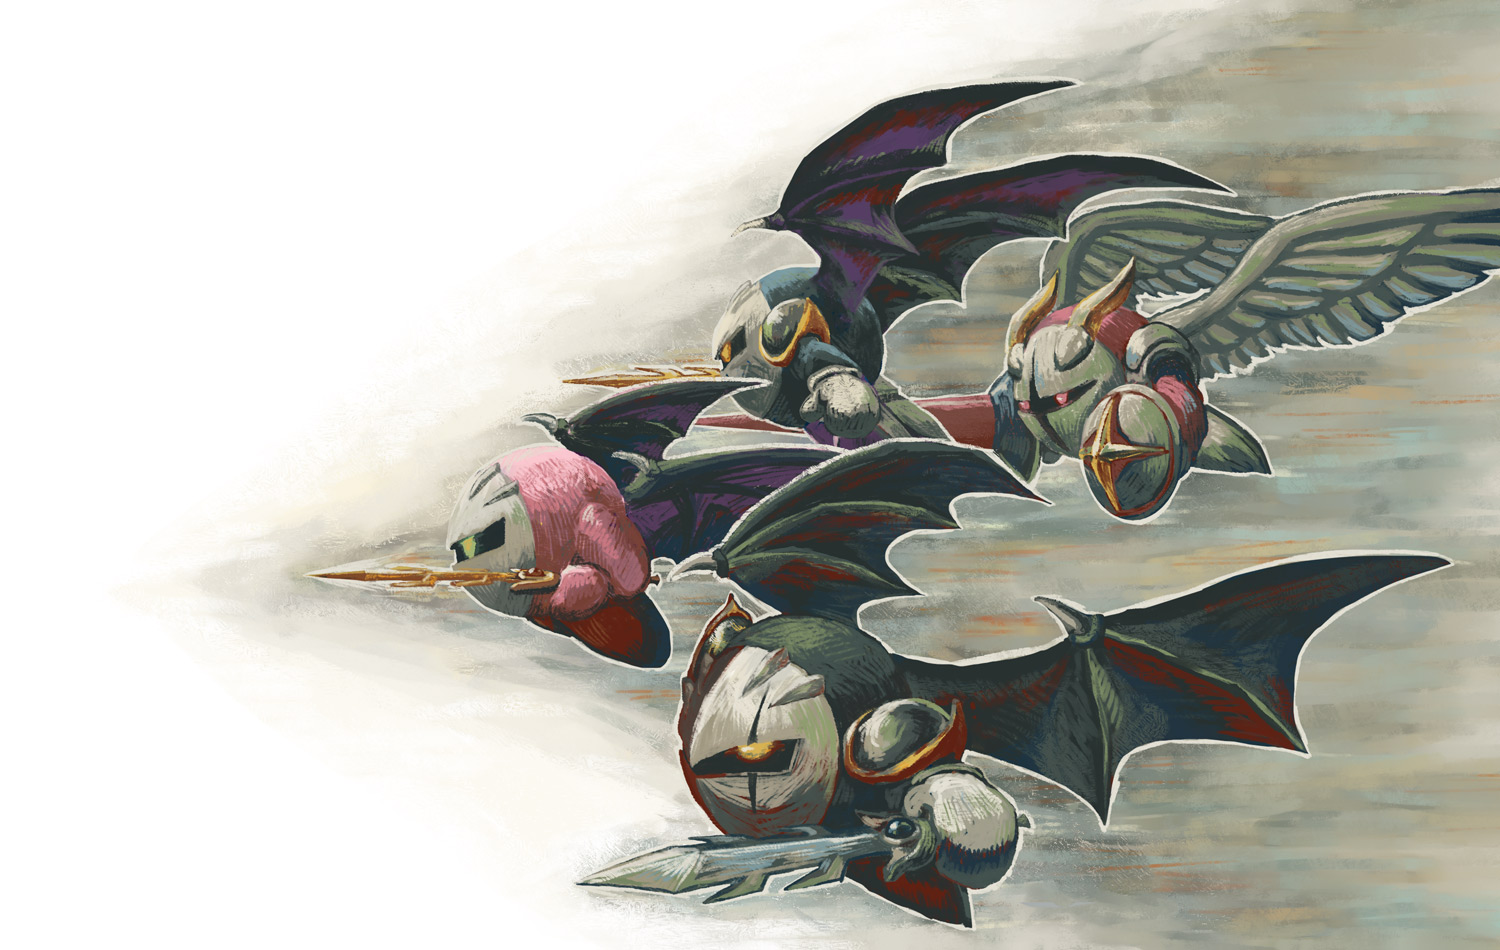 Dark Metaknight - Meta Knight - Zerochan Anime Image Board